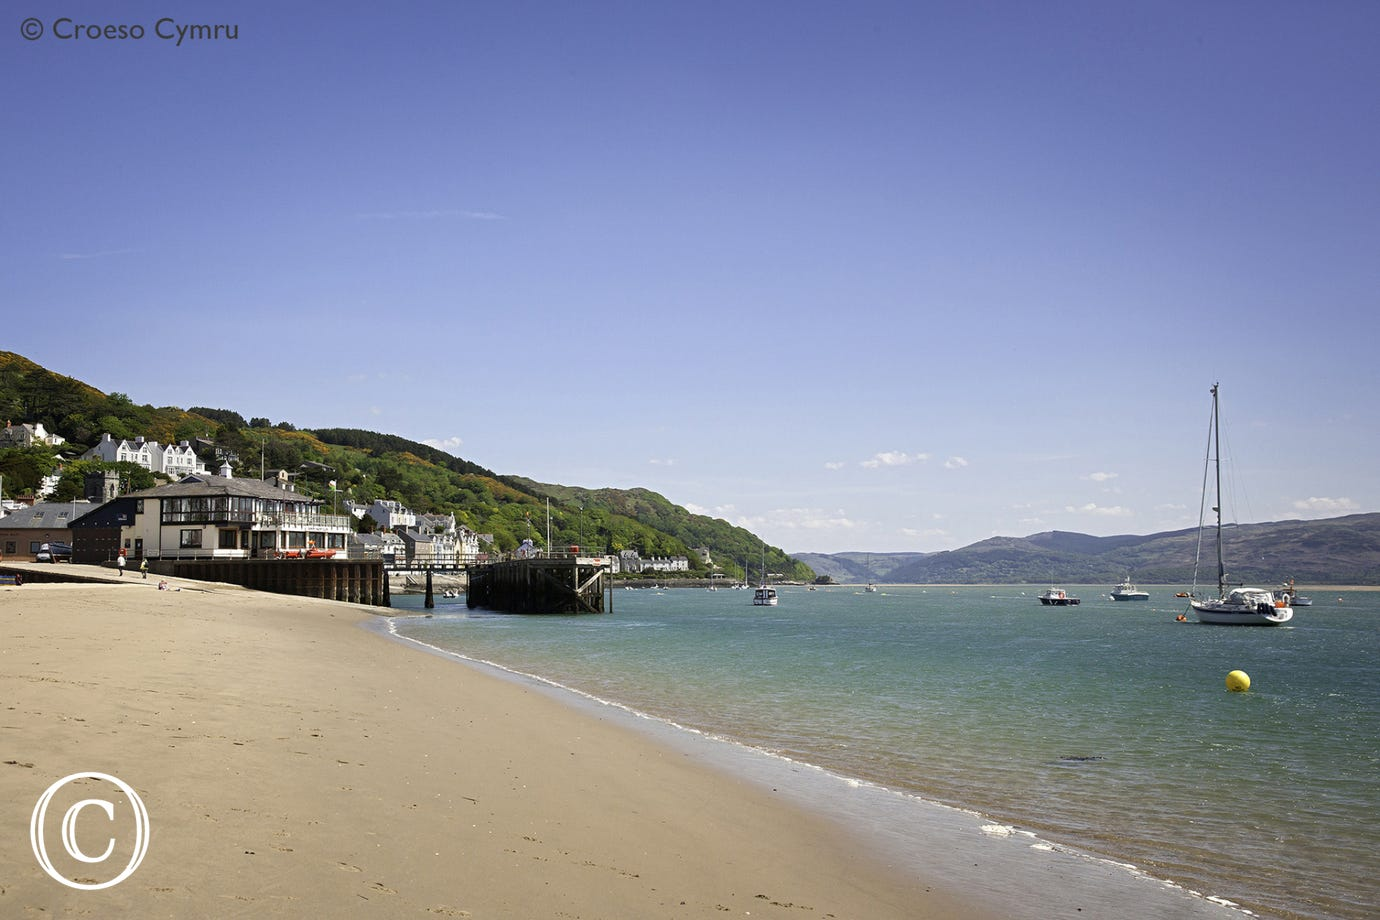 Aberdyfi Beach with plenty of cafes and restaurants on the sea front